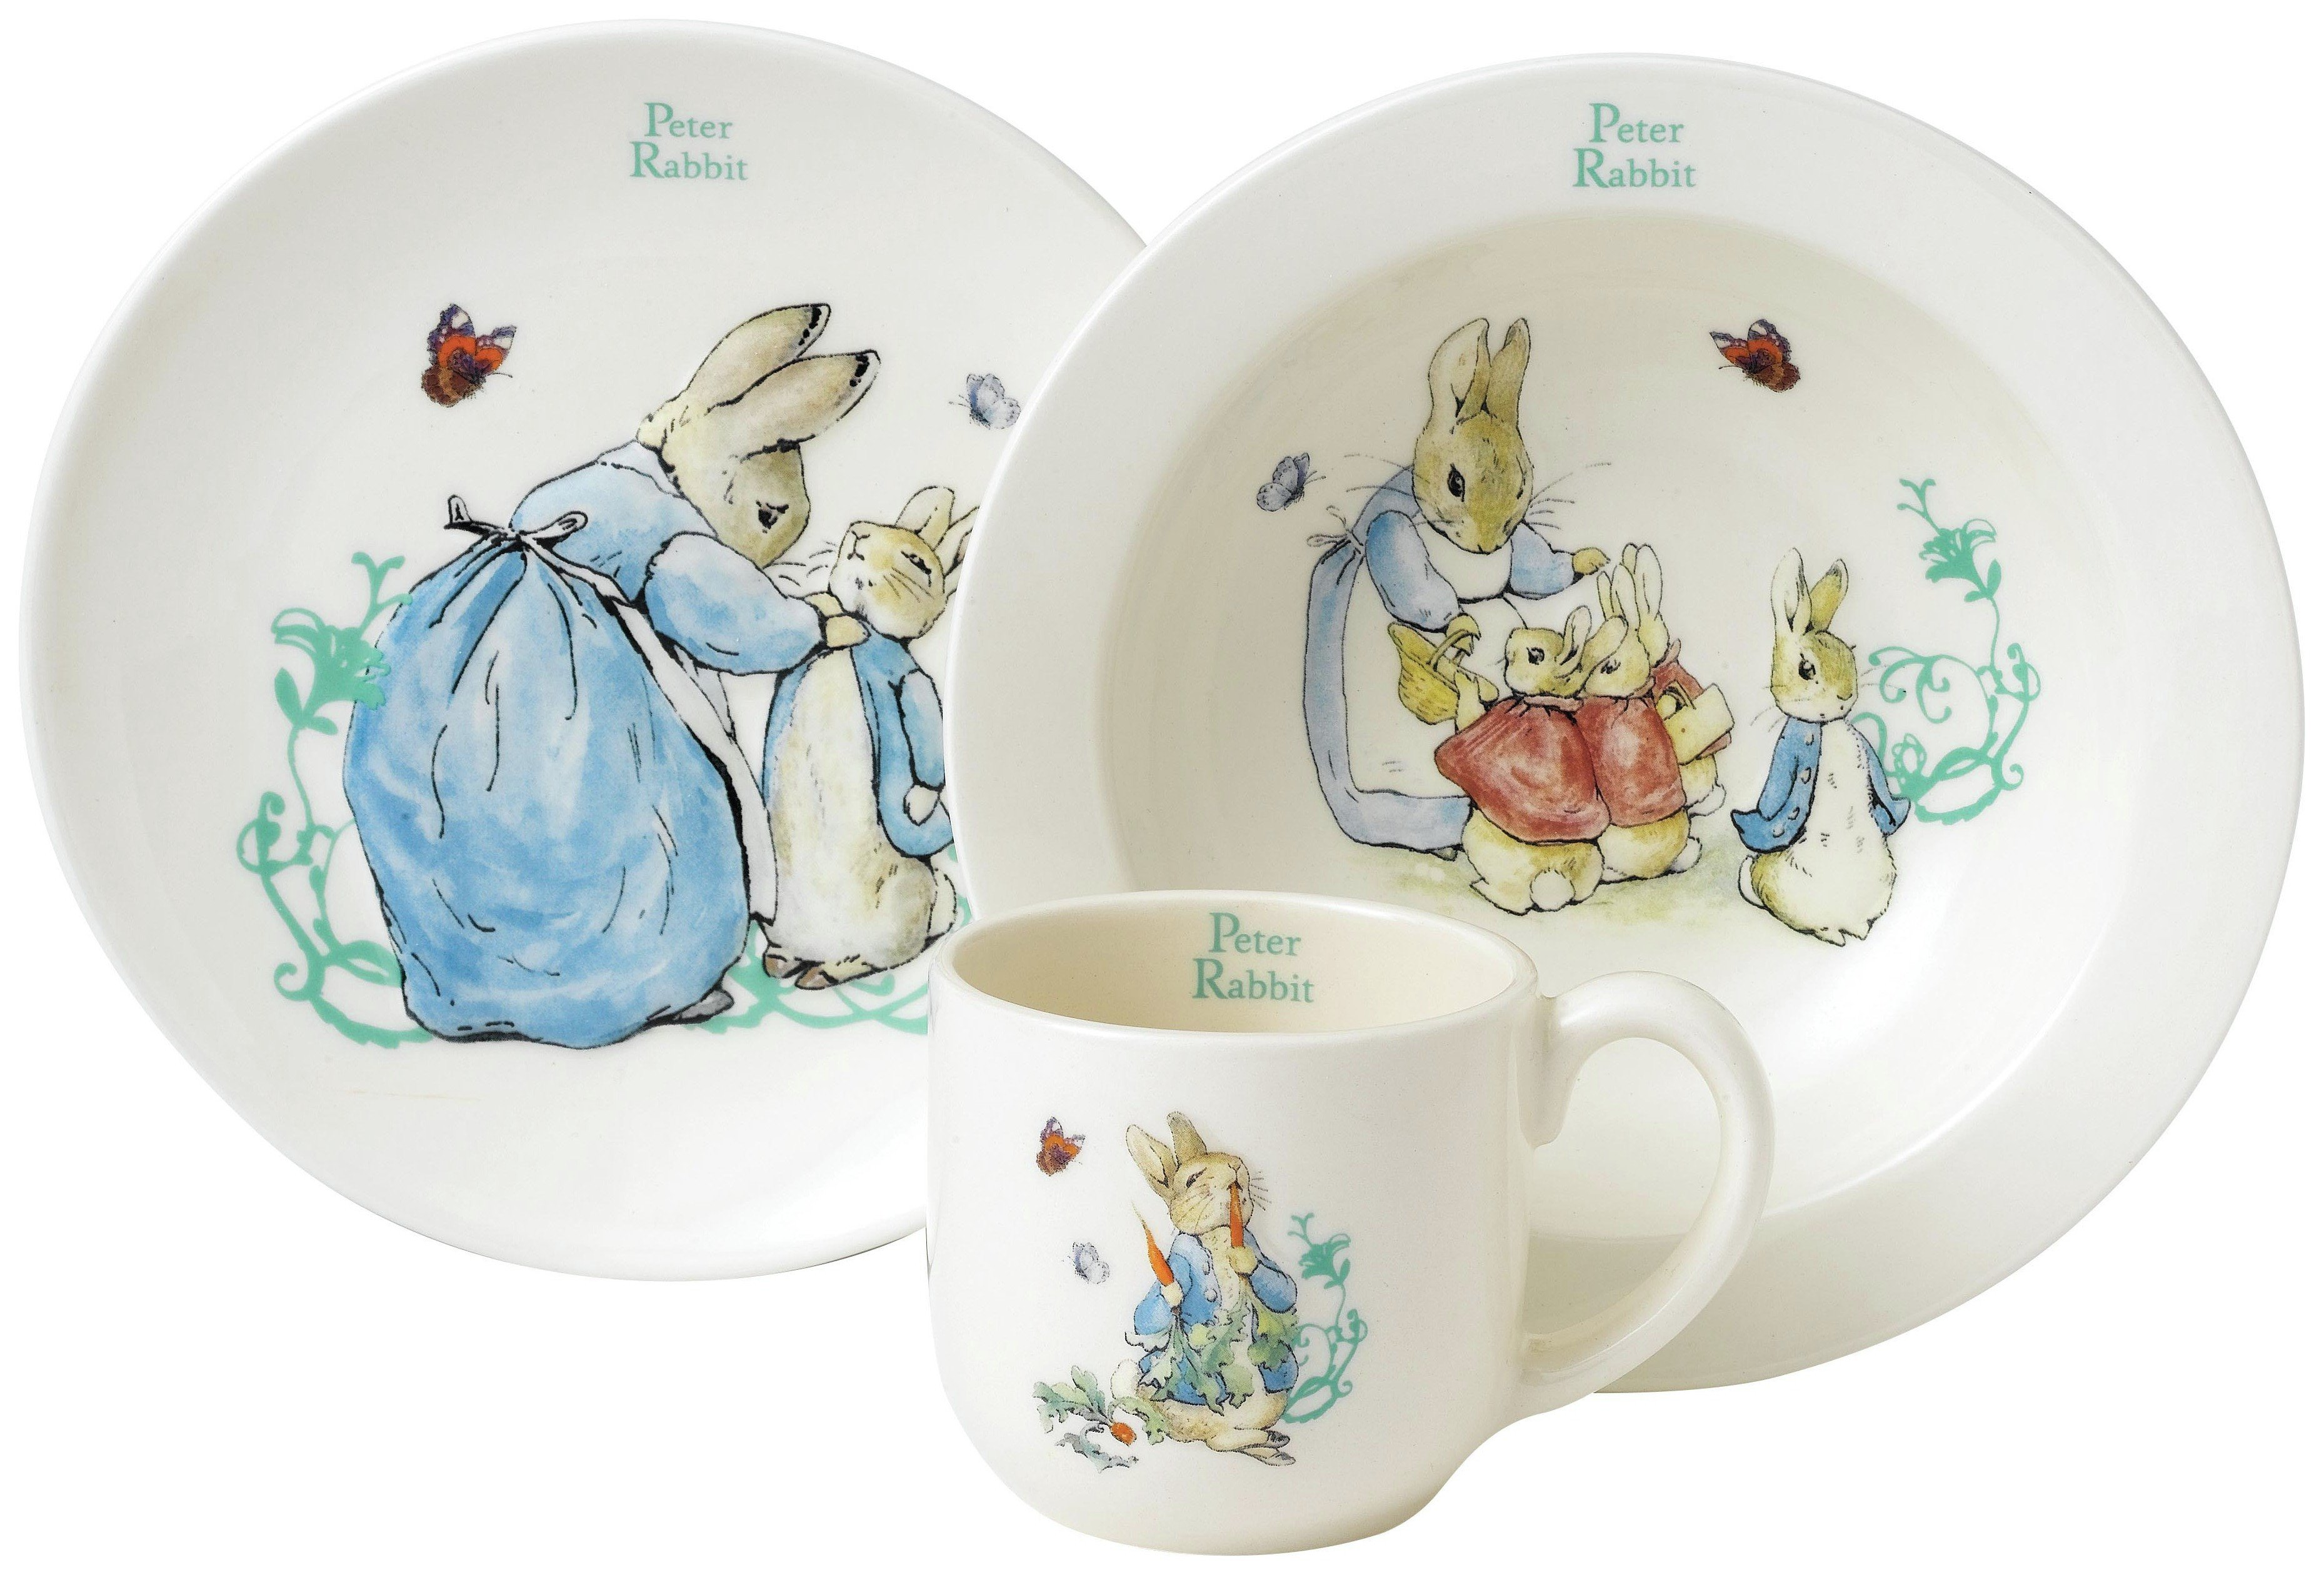 Image of Beatrix Potter Peter Rabbit Three Piece Nursery Set.